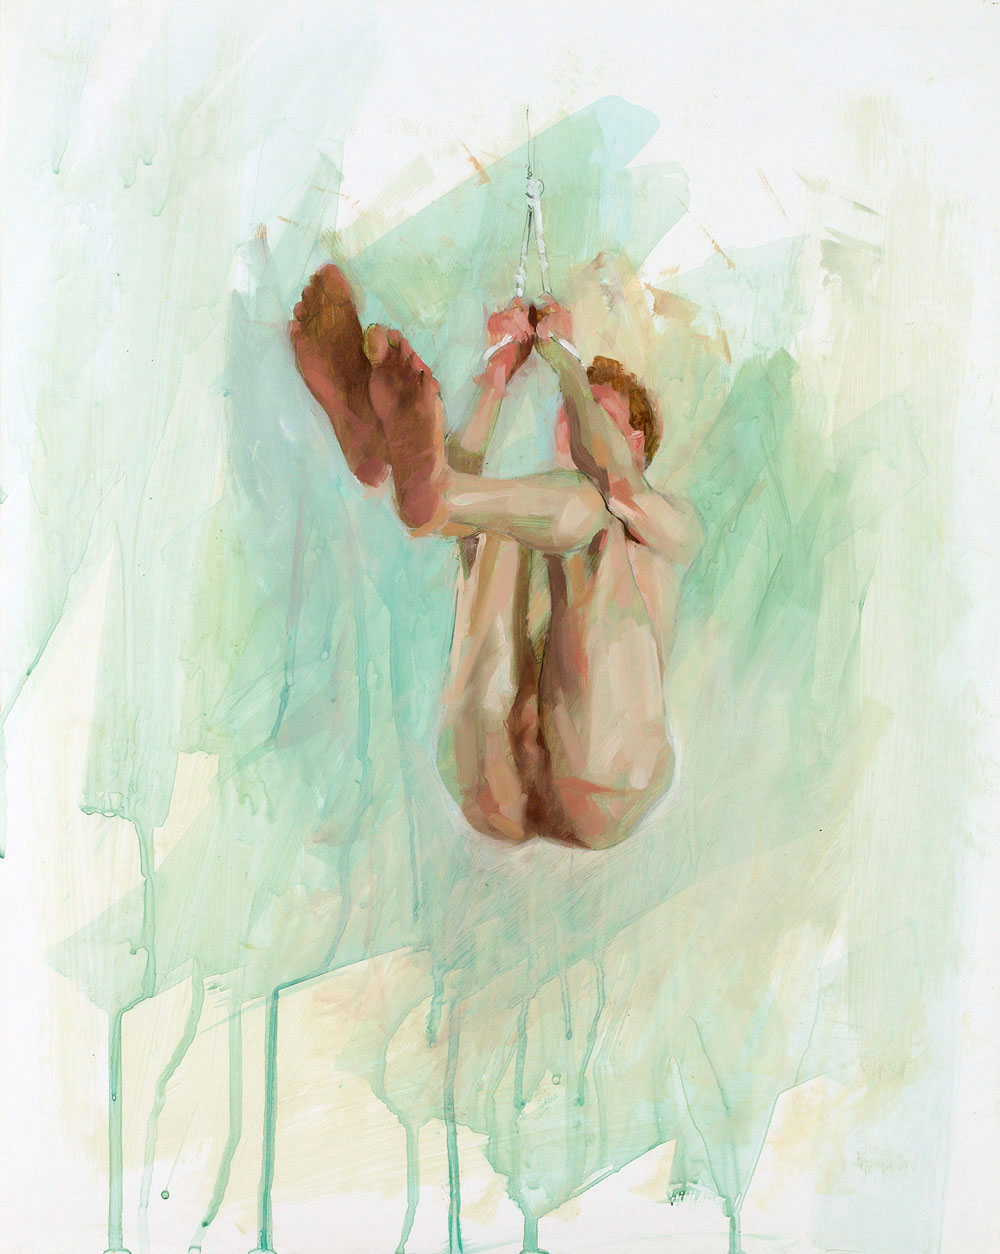 Hang Study No. 2   20 x 16 inches  oil on TerraSkin